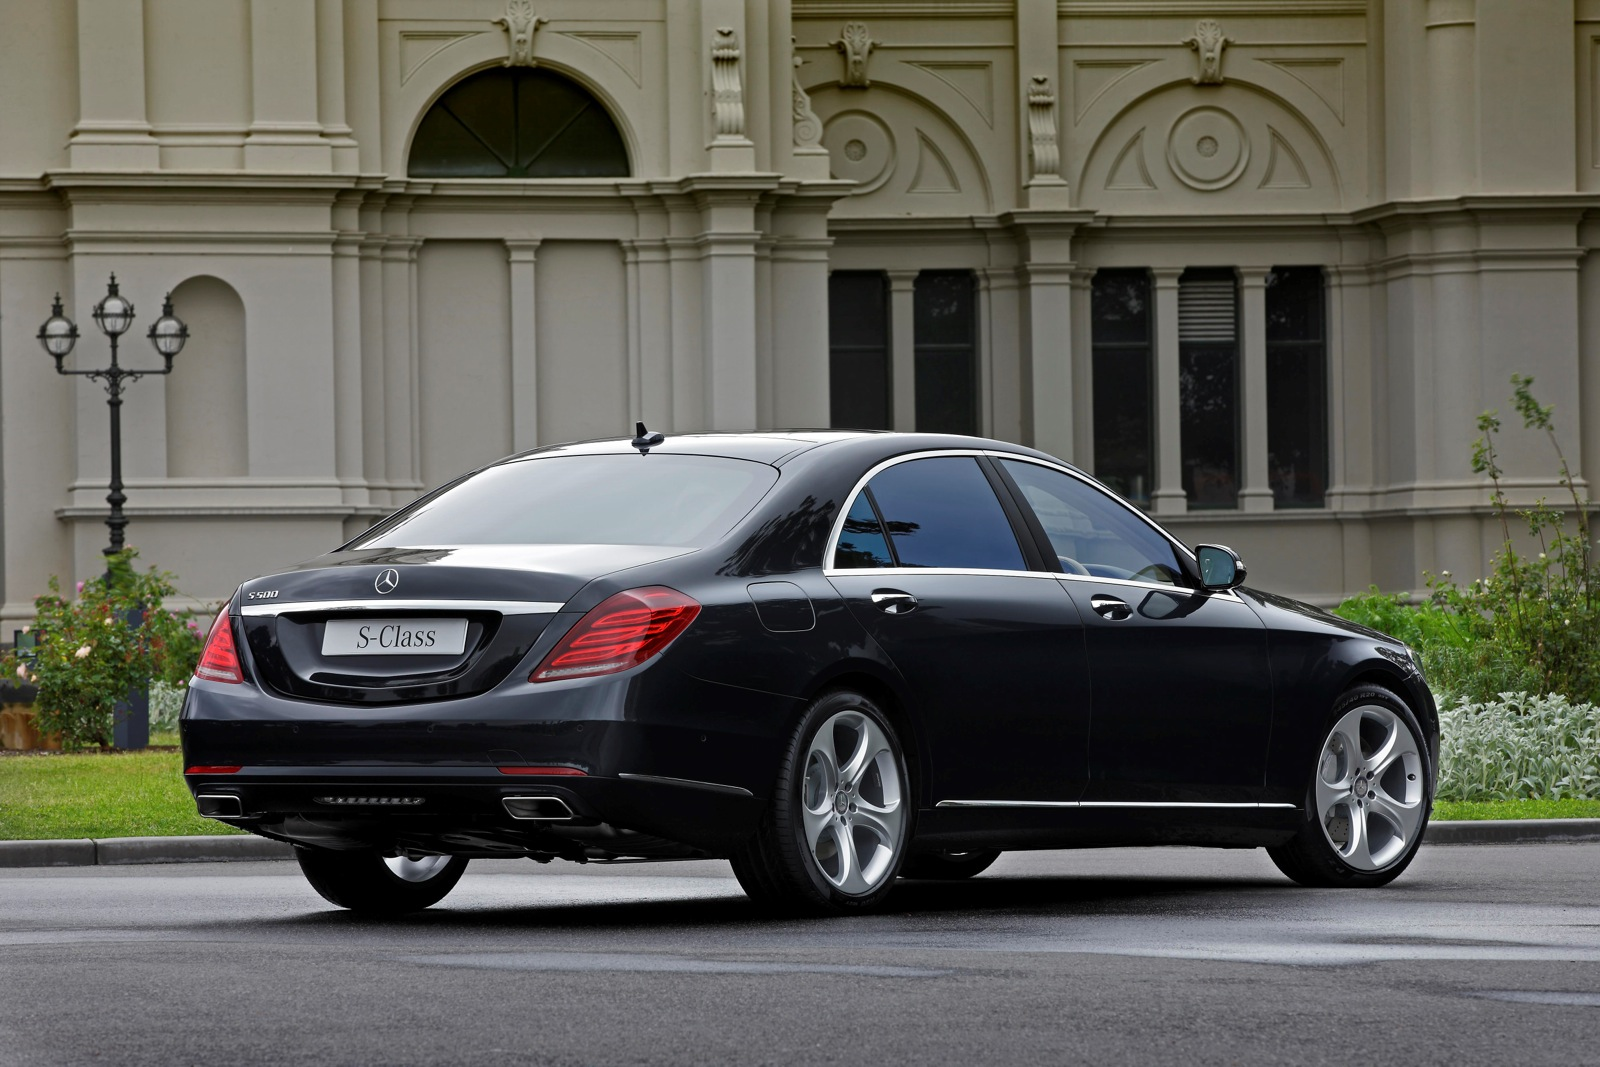 2014 mercedes benz s class unveiled in melbourne photos for 2014 mercedes benz s550 review